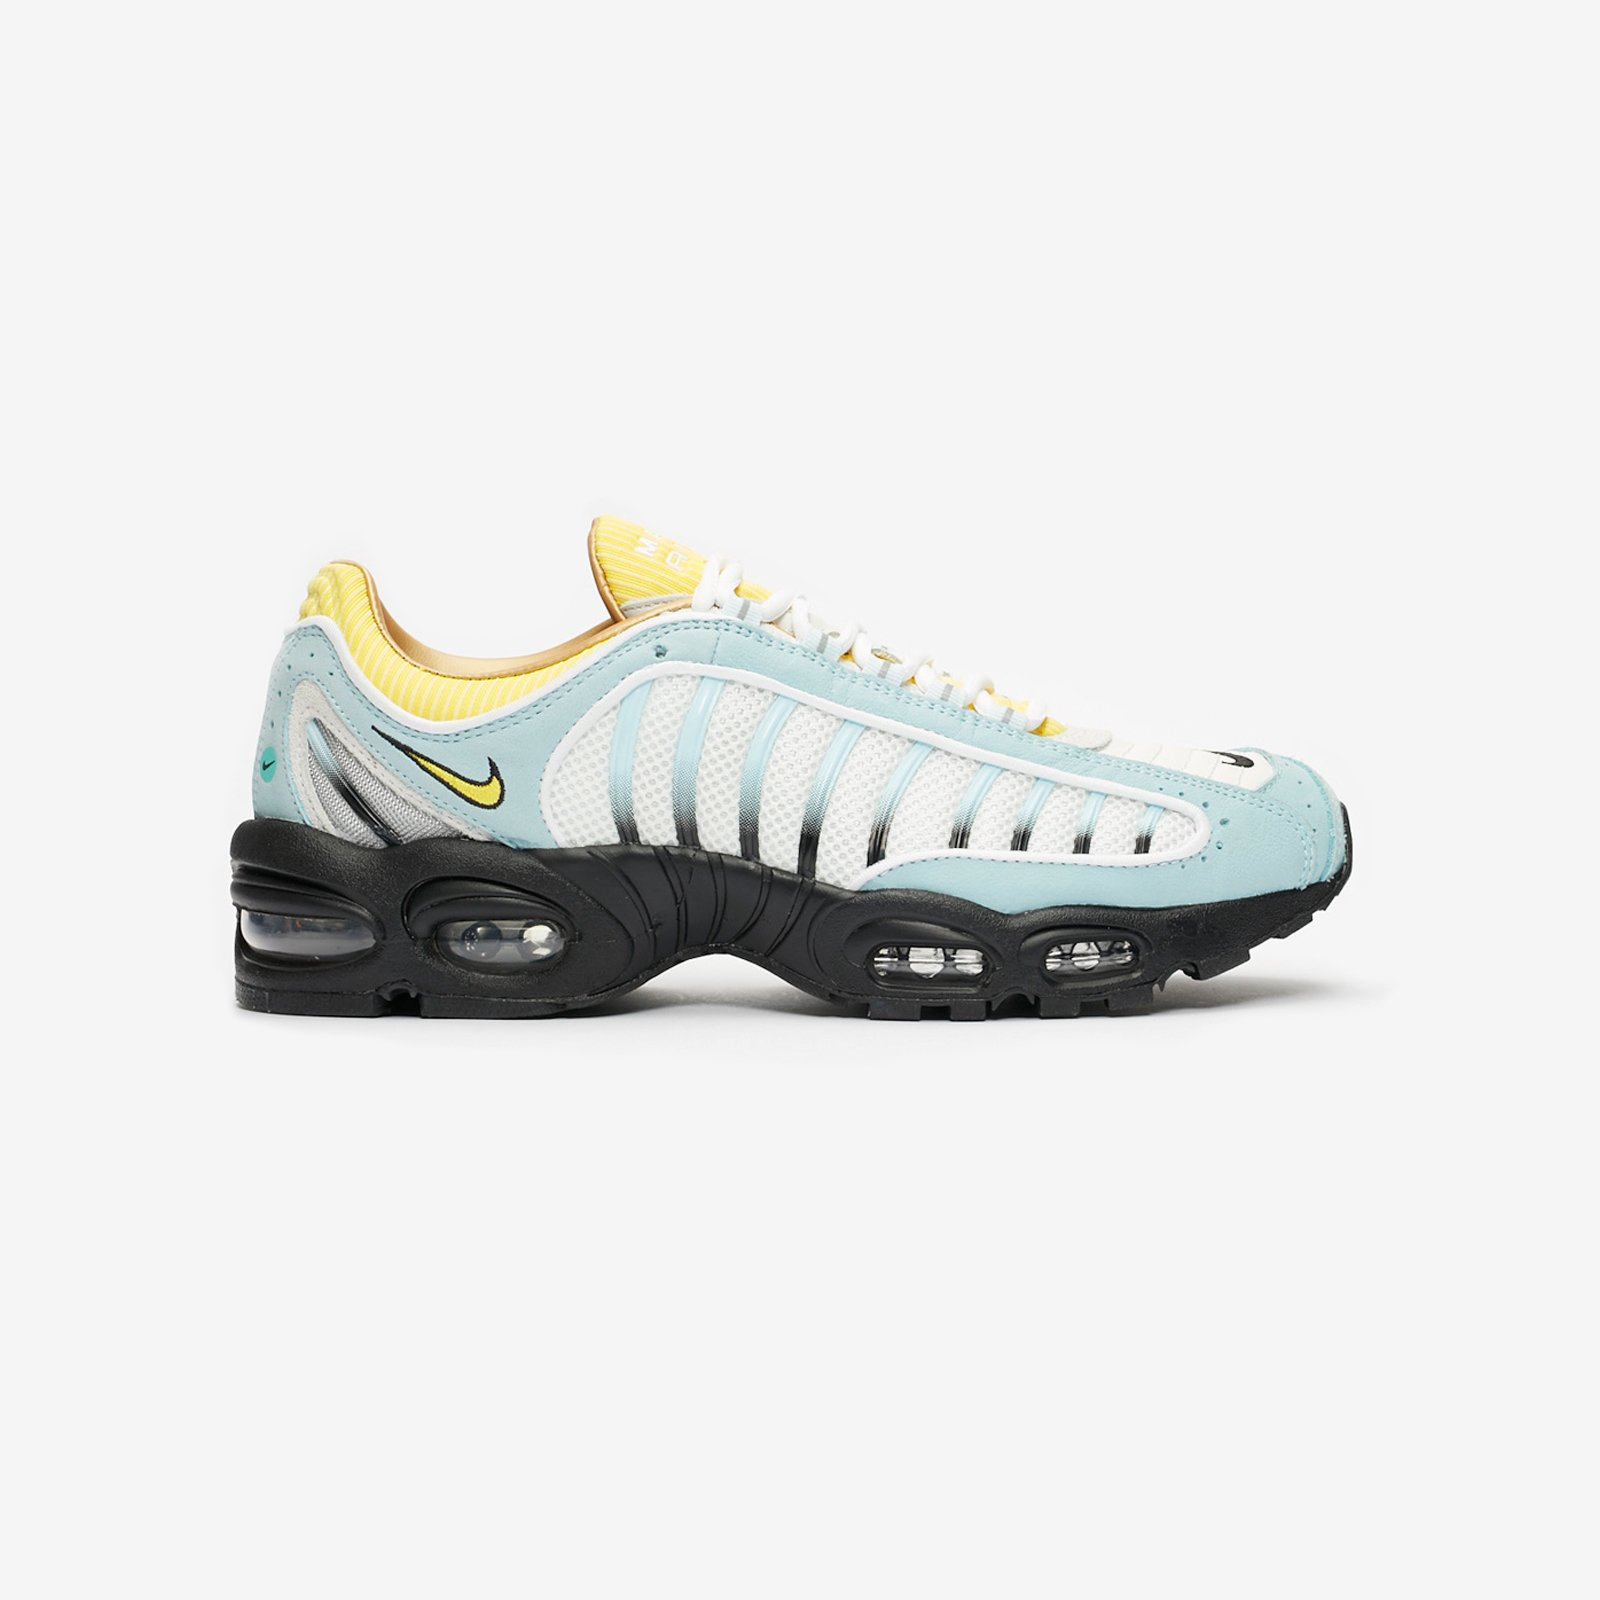 Sneakersnstuff x Nike Air Max Tailwind IV Official Look